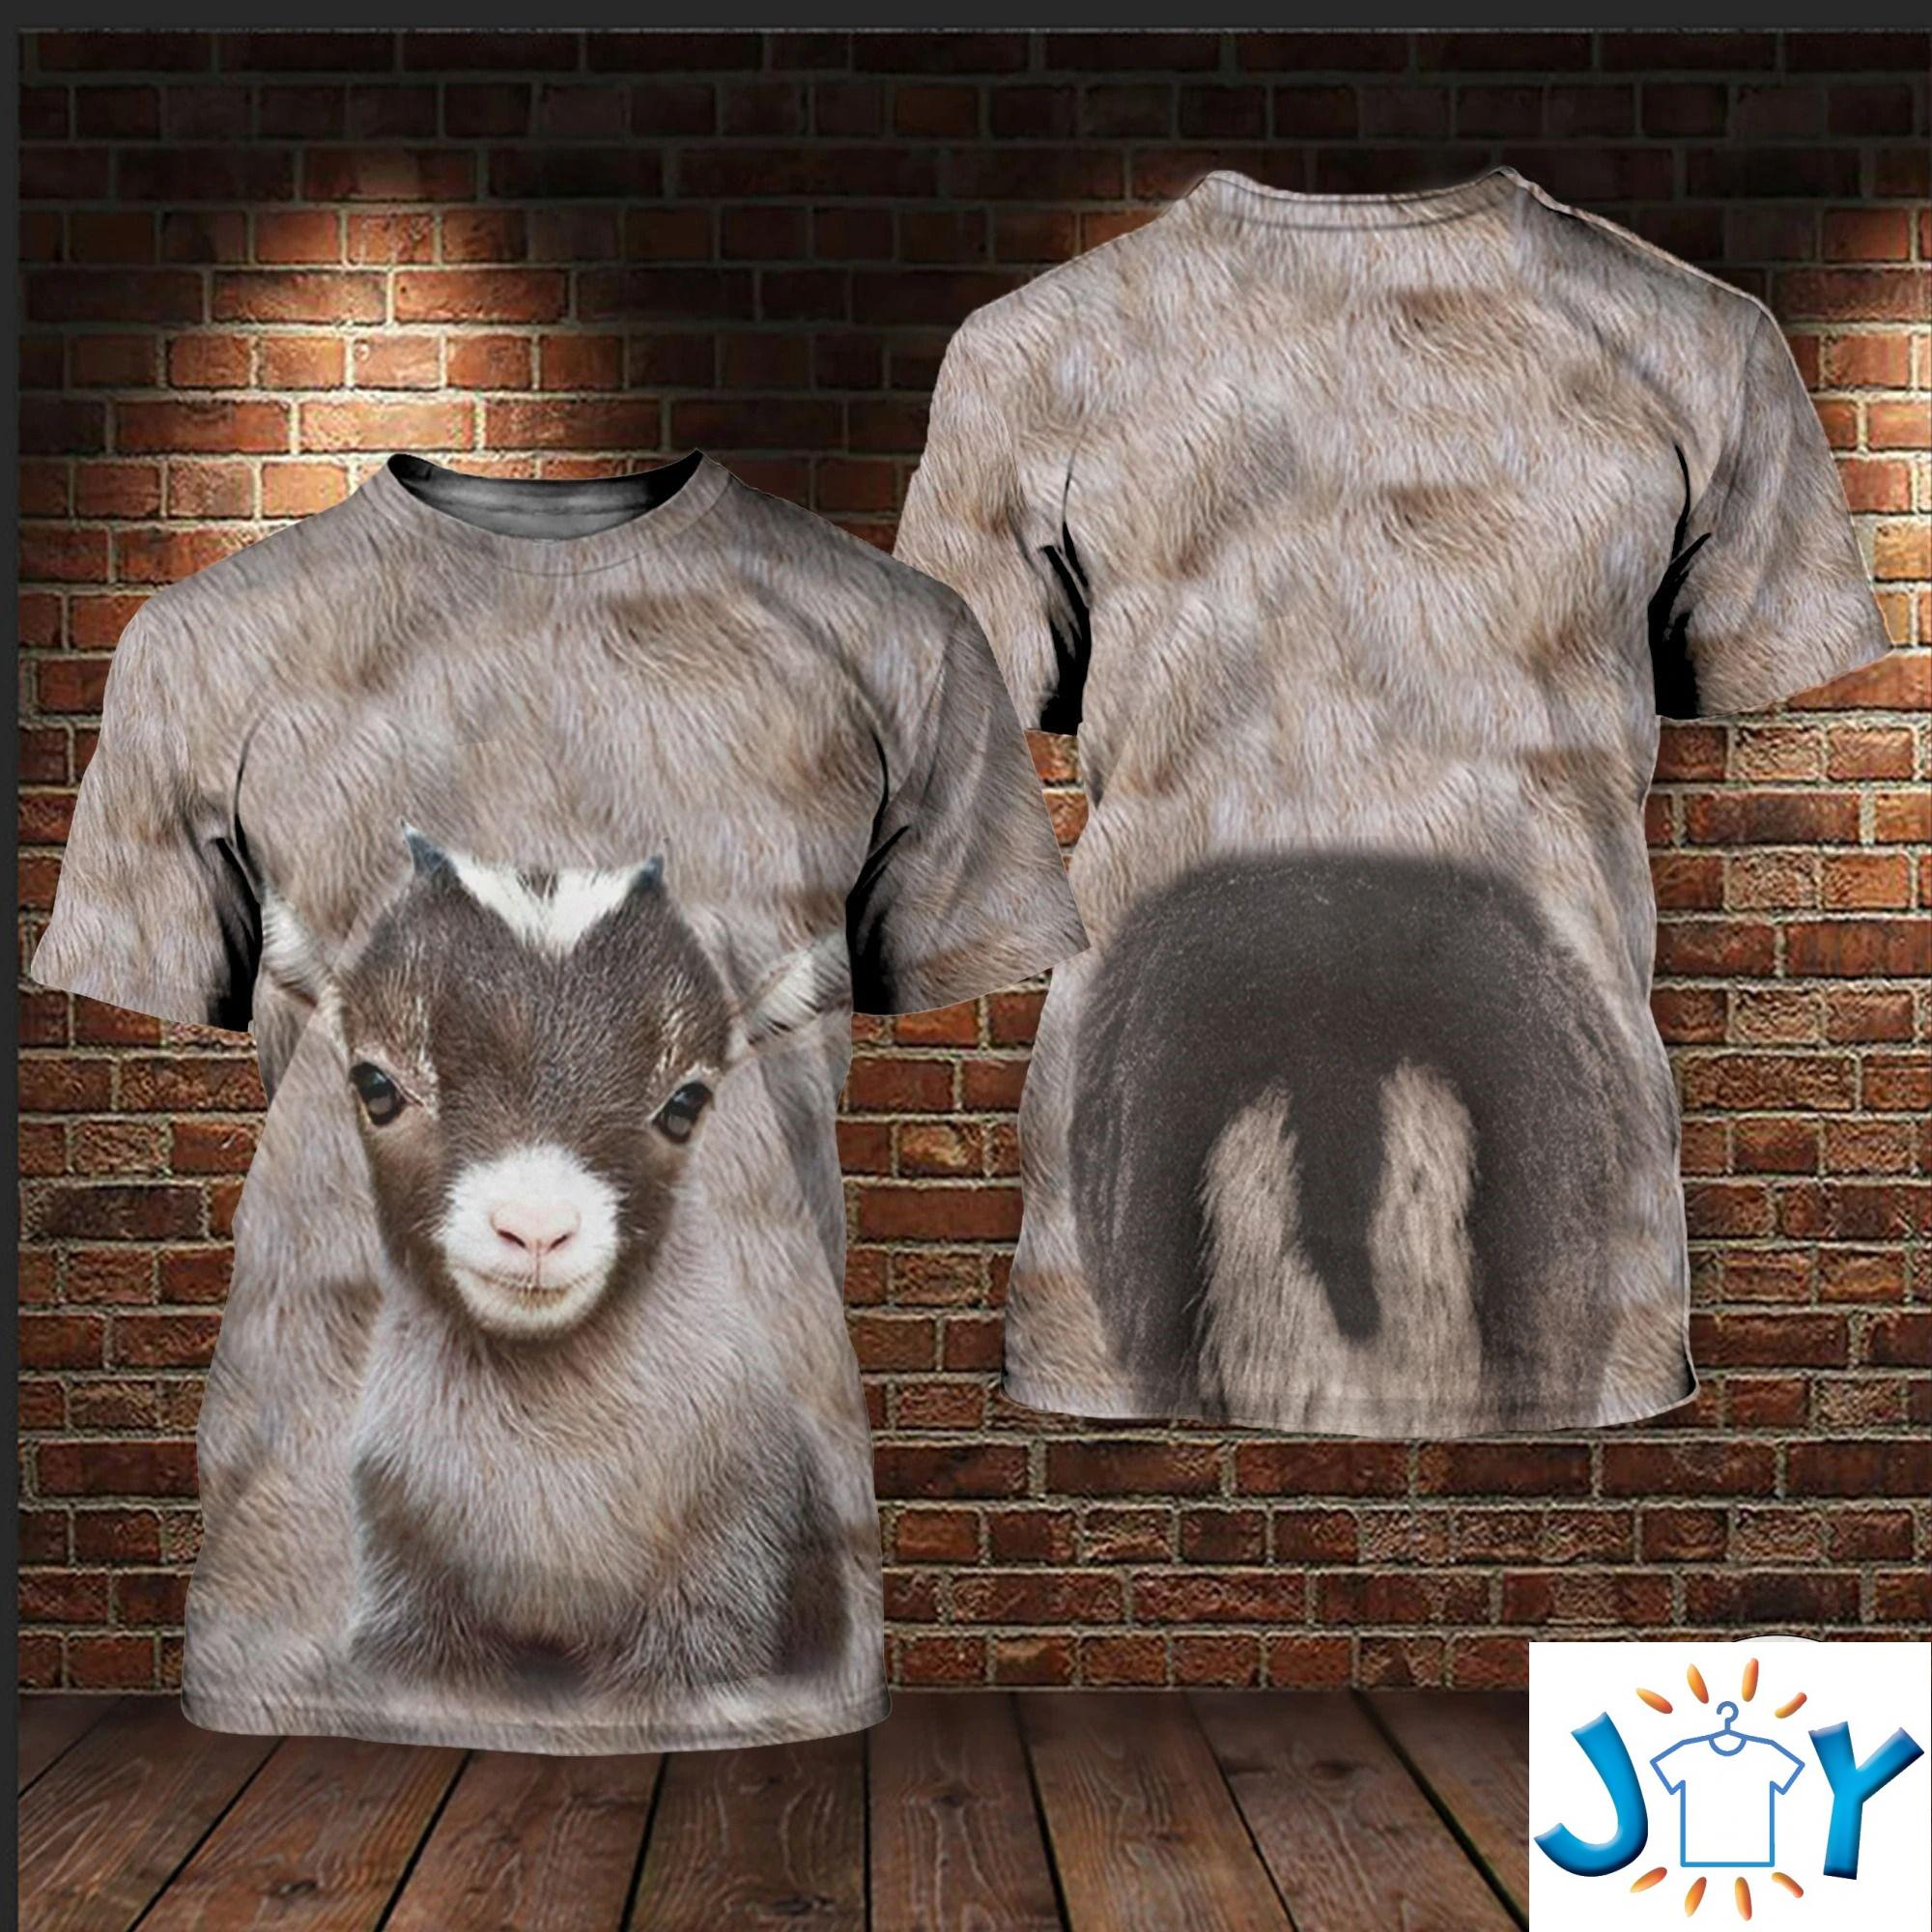 Baby Goat 3D All Over Print Hoodies, Sweatshirt And T-Shirt